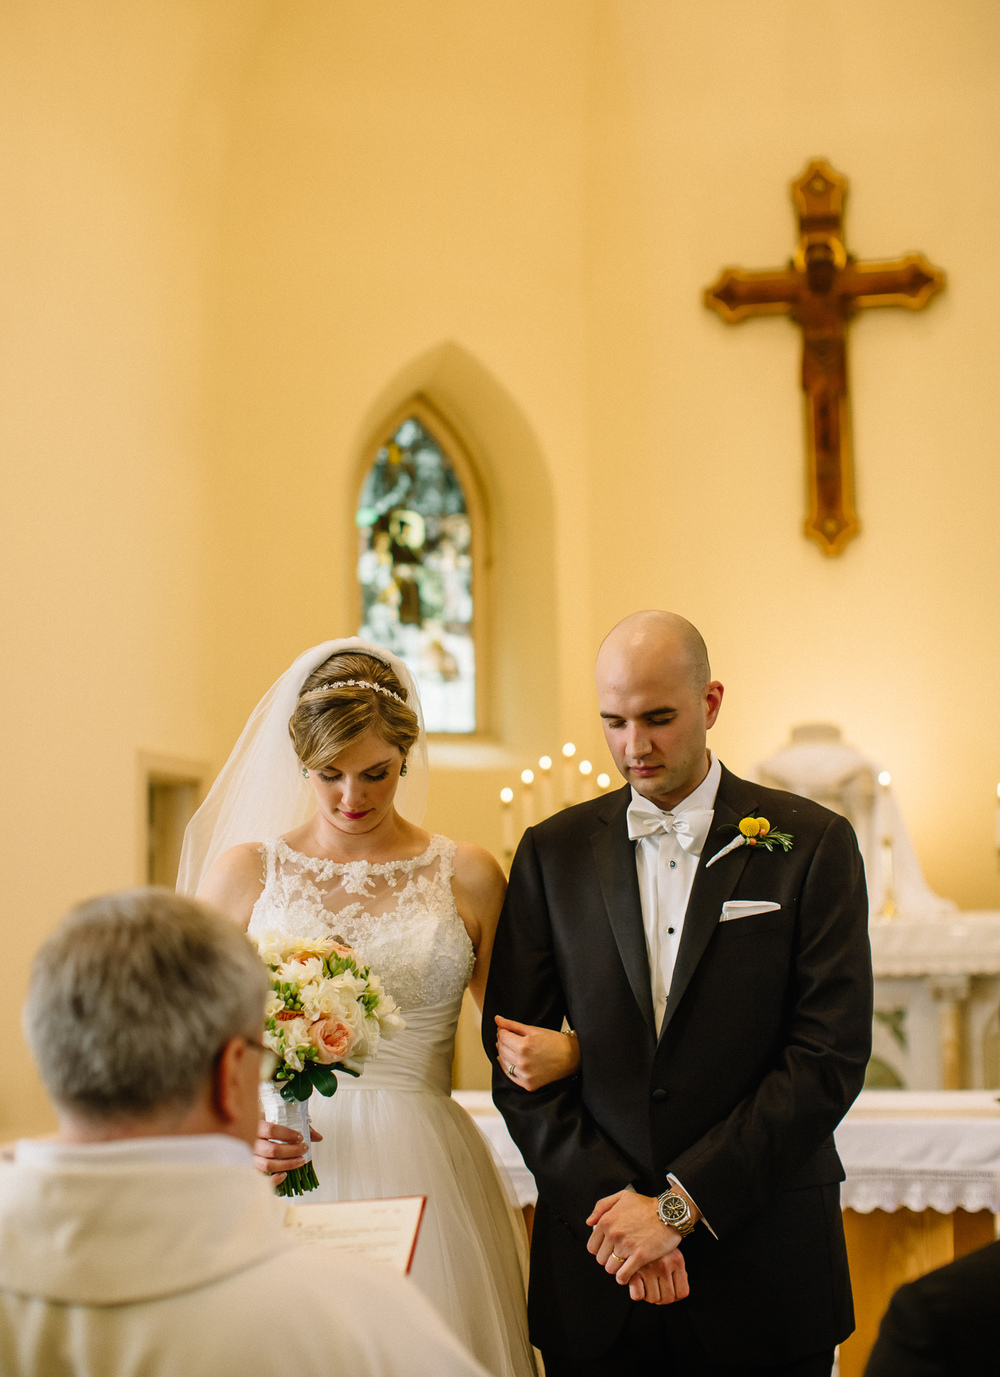 teal adam wed 48.jpg